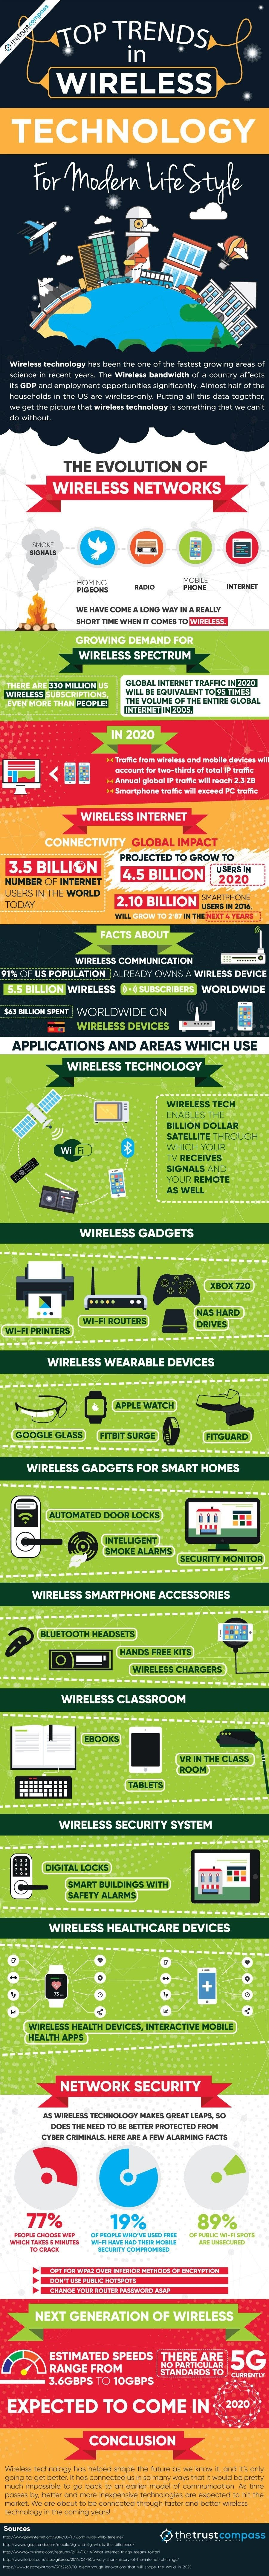 Wireless Technology and Communication Top Trends 2018 #infographic